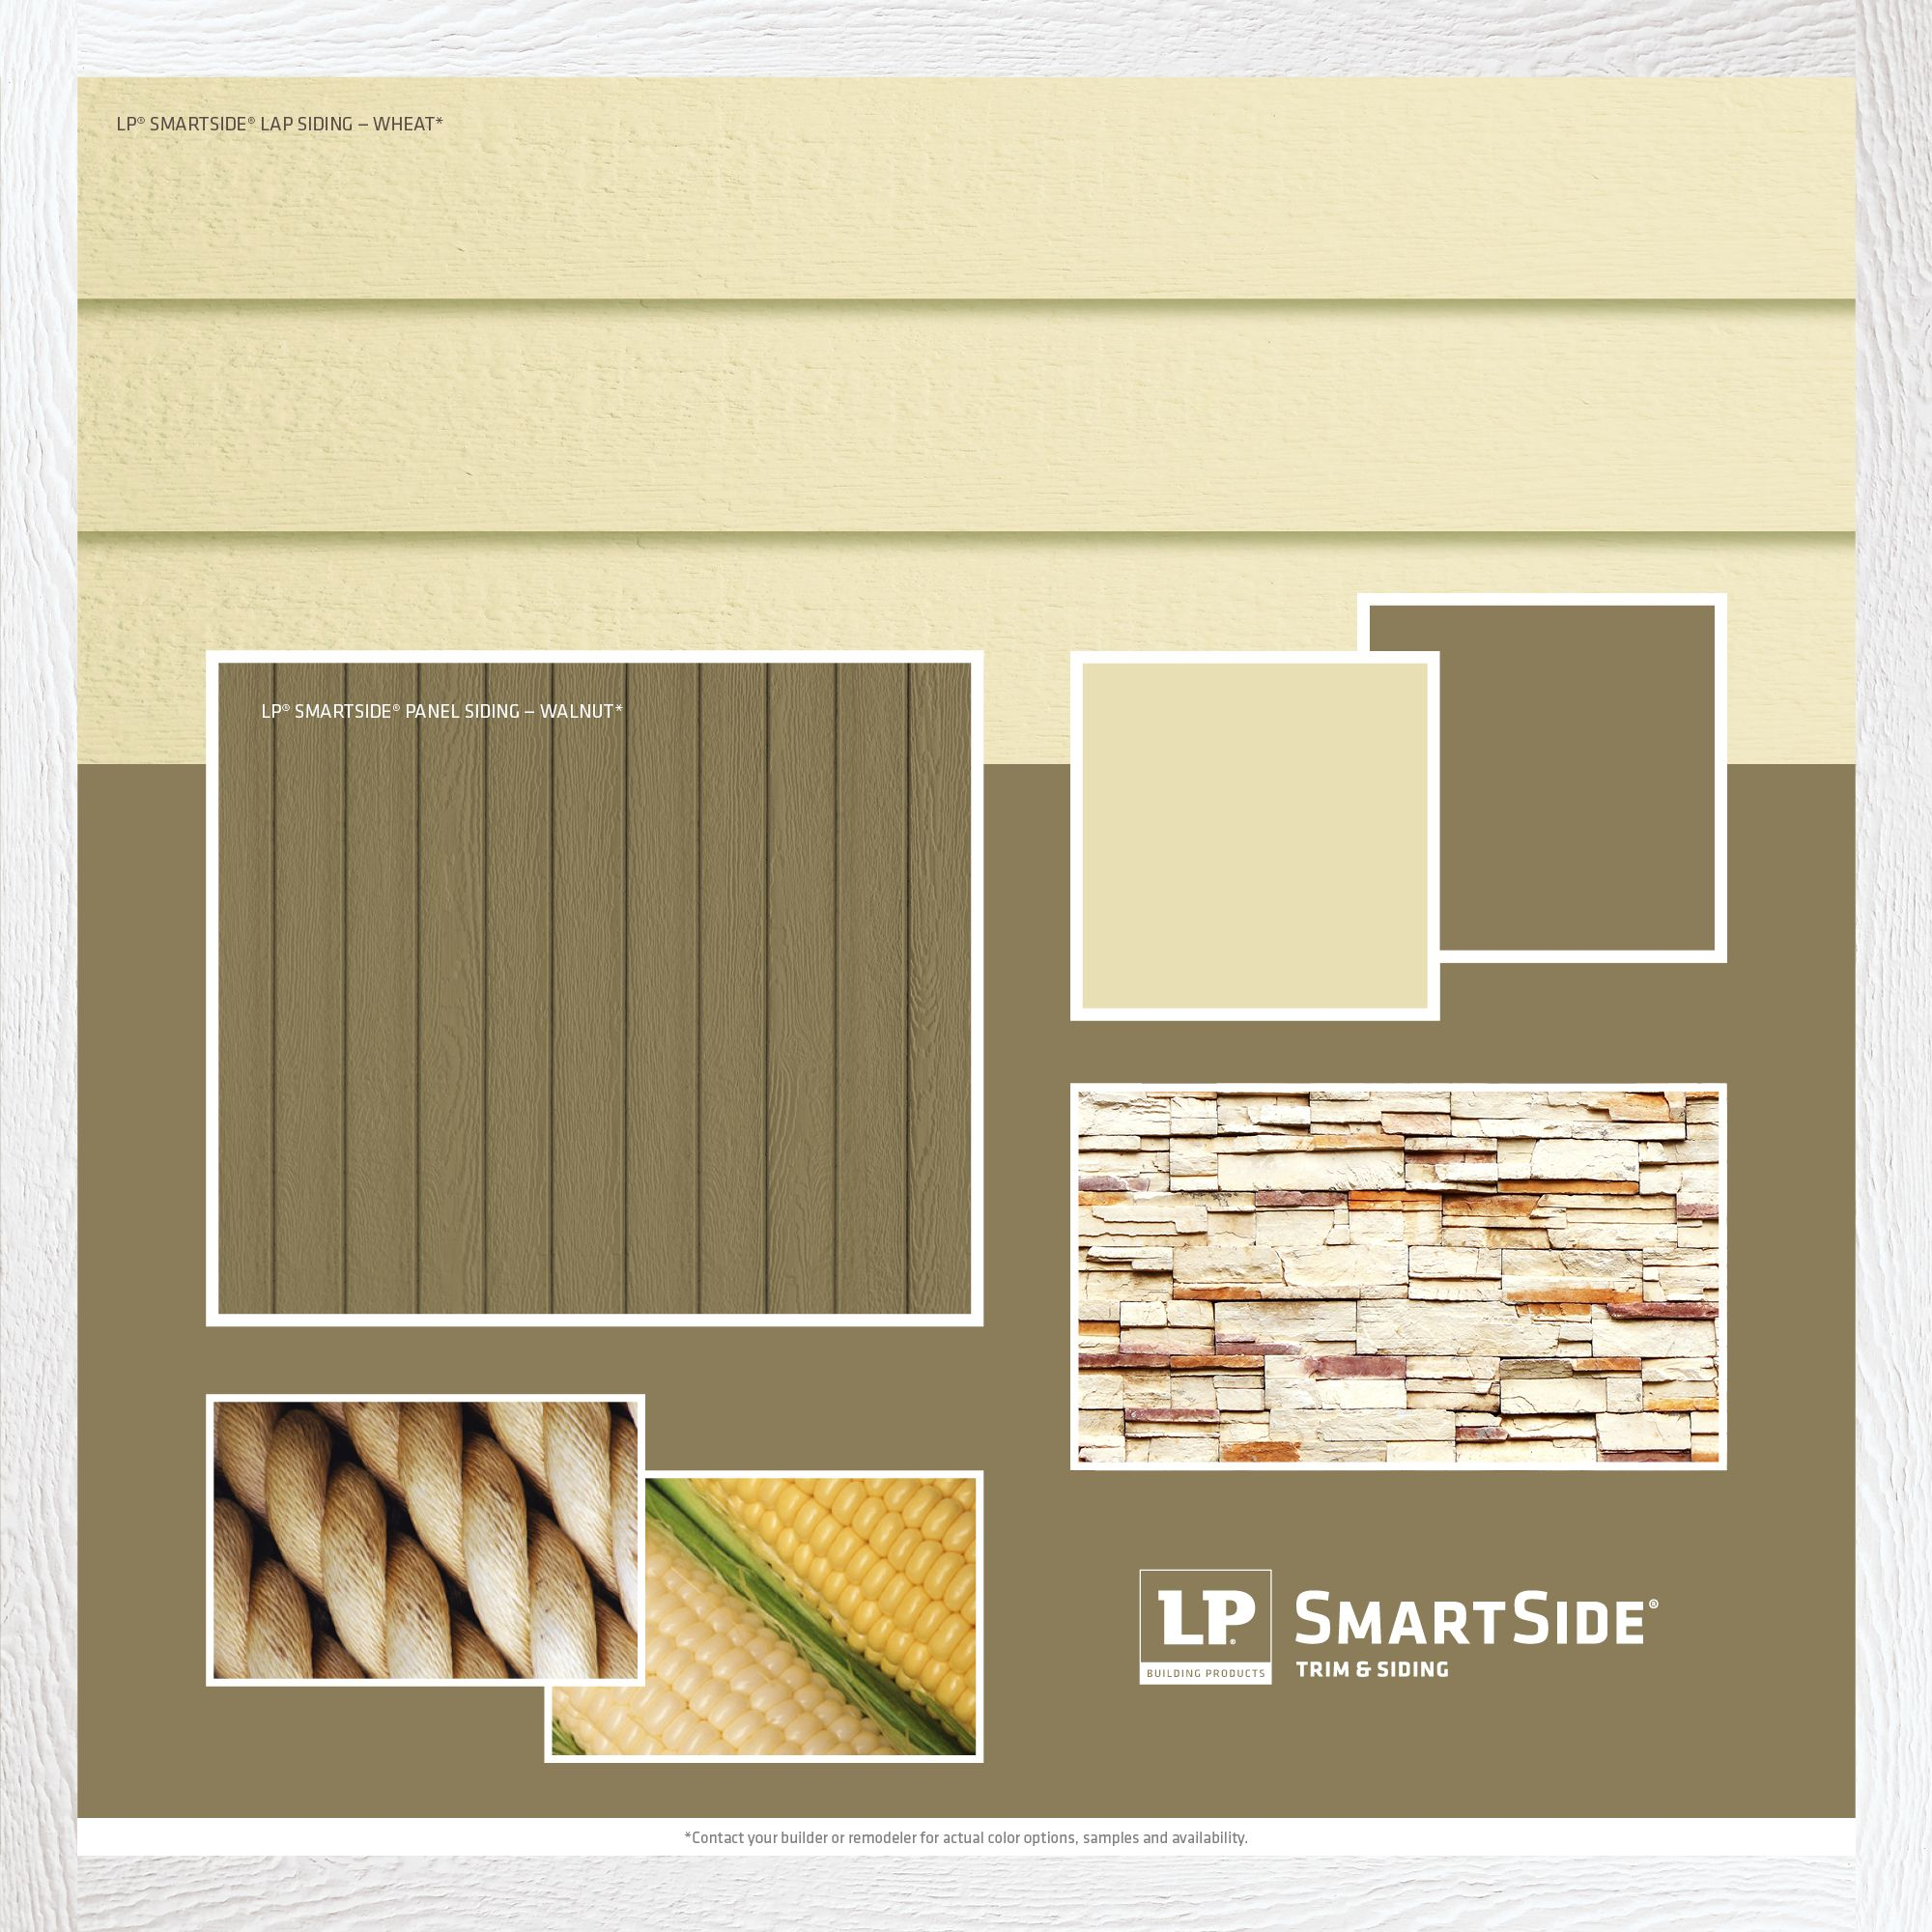 To Give Your Home S Exterior A Natural Contemporary Look Consider This Combination Of Lp Smartside Siding A Engineered Wood Siding Siding Trim House Exterior